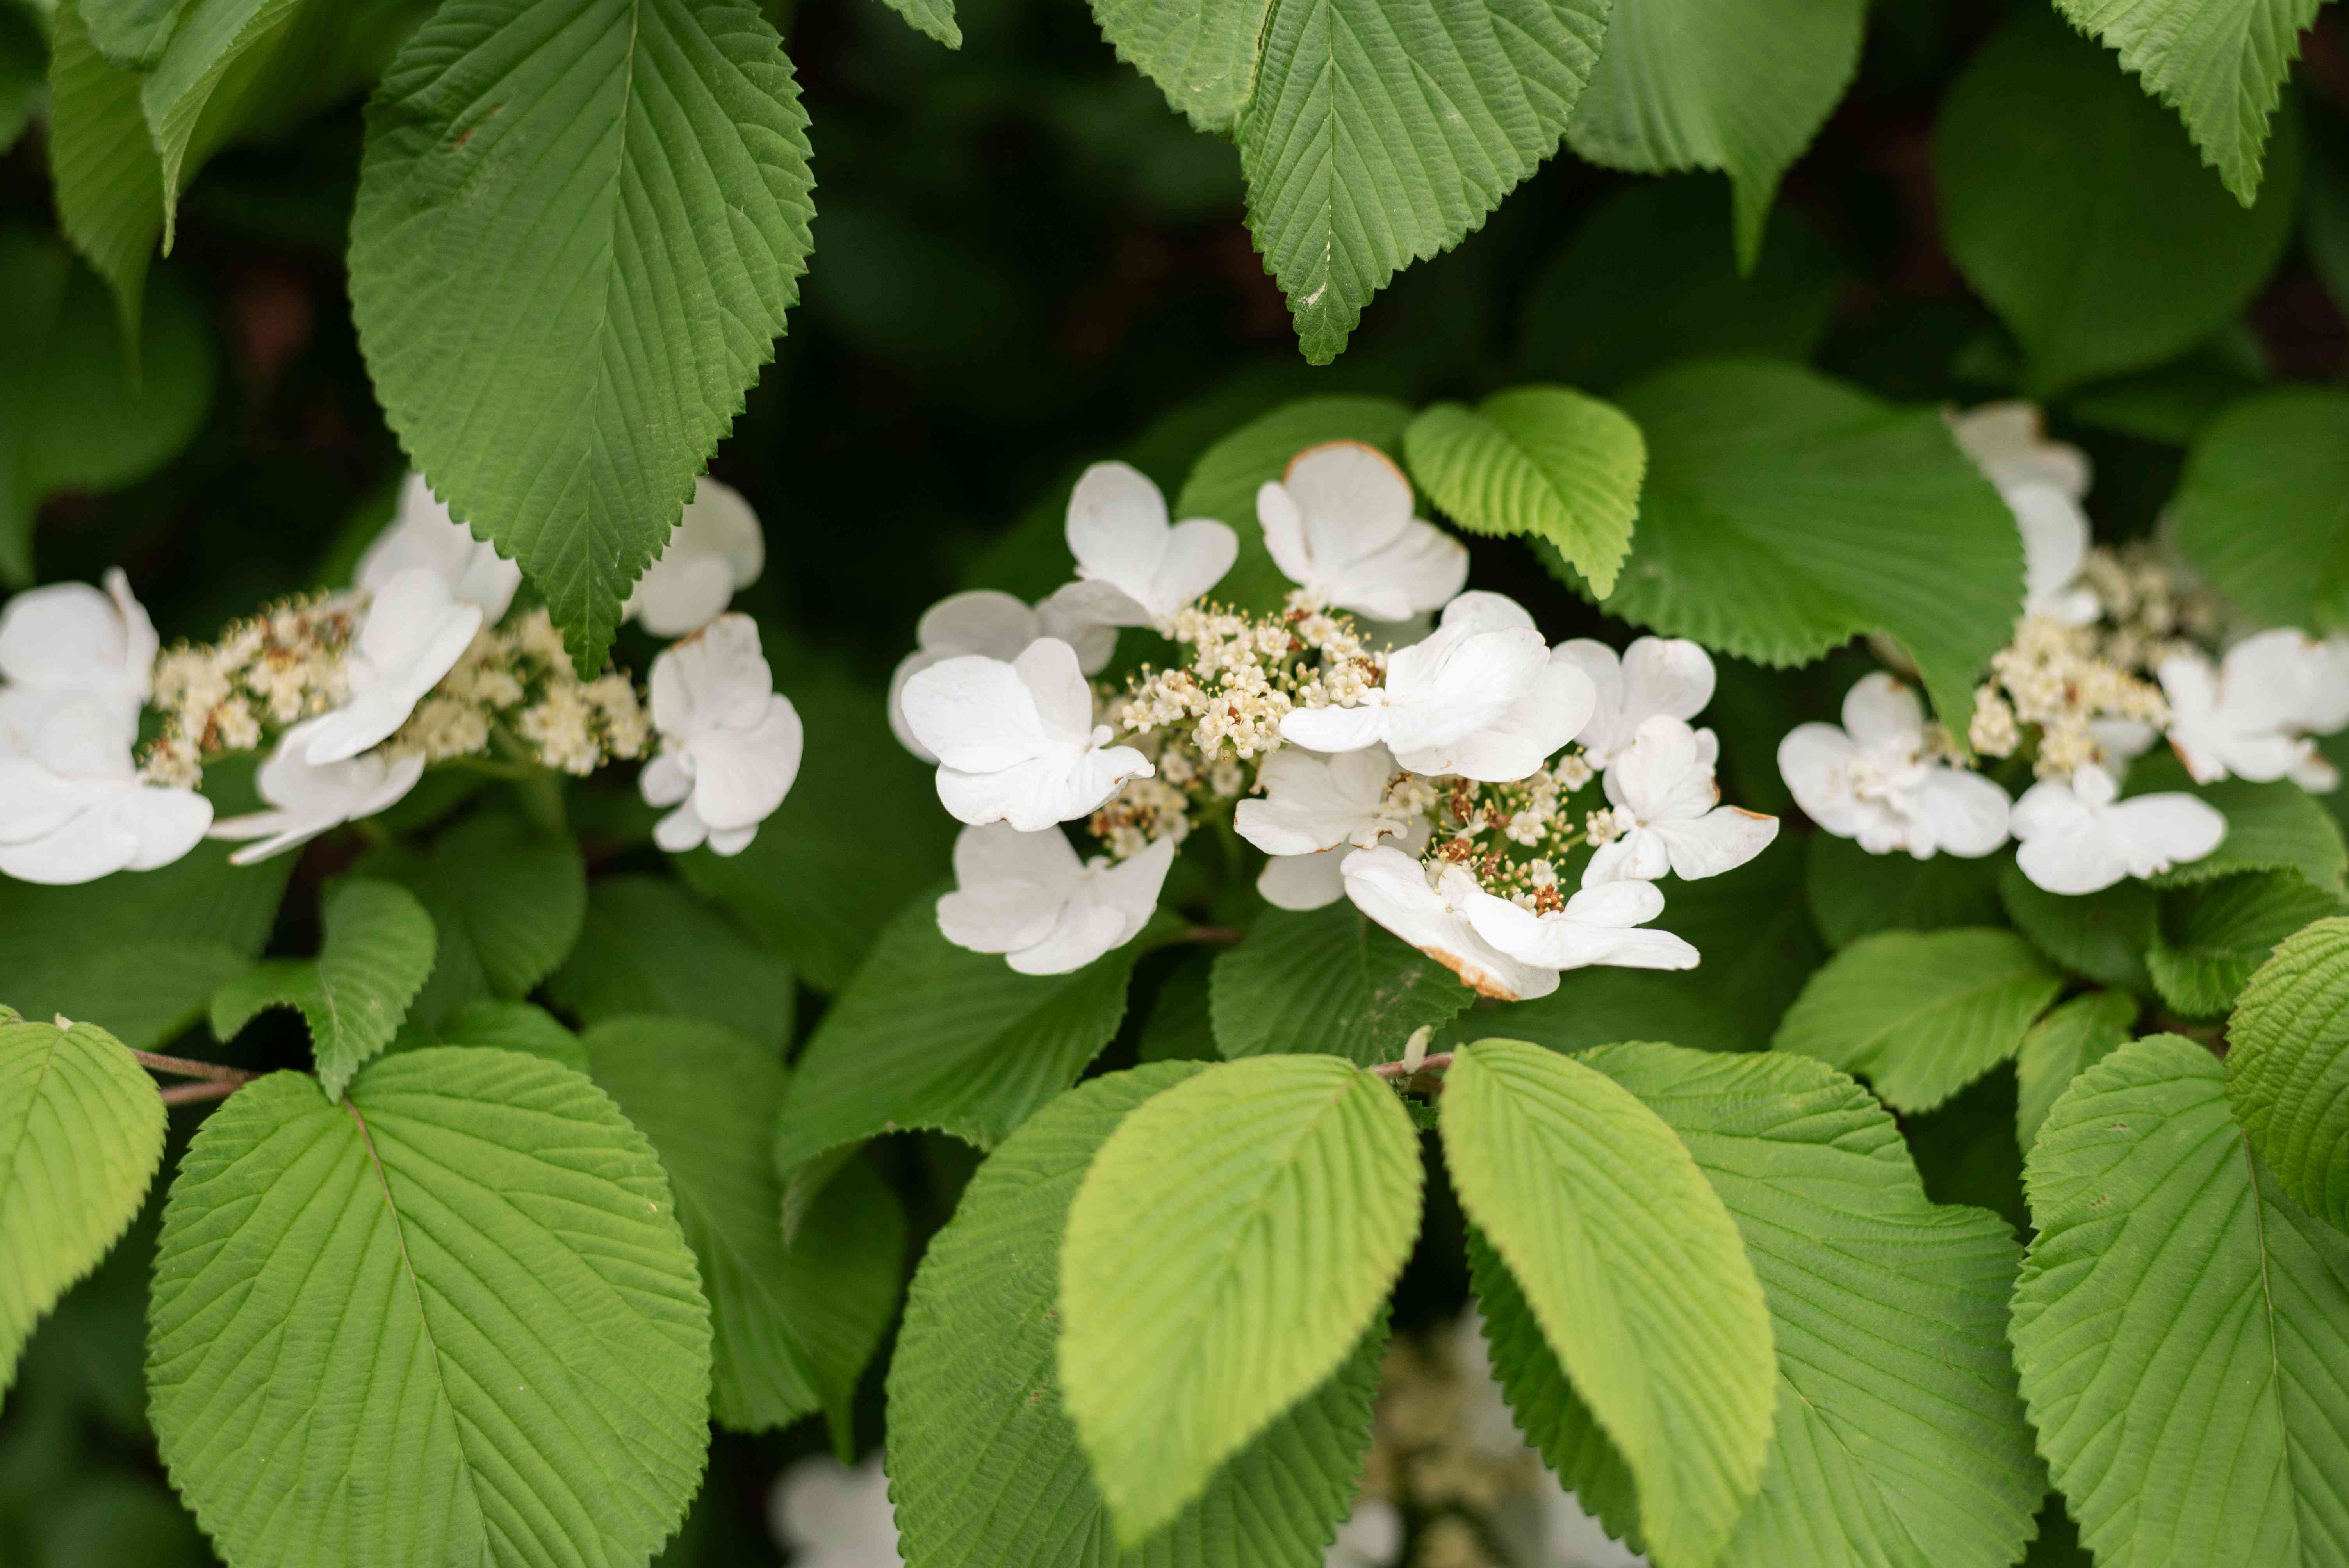 Climbing hydrangea with small white flower clusters in between ribbed vines